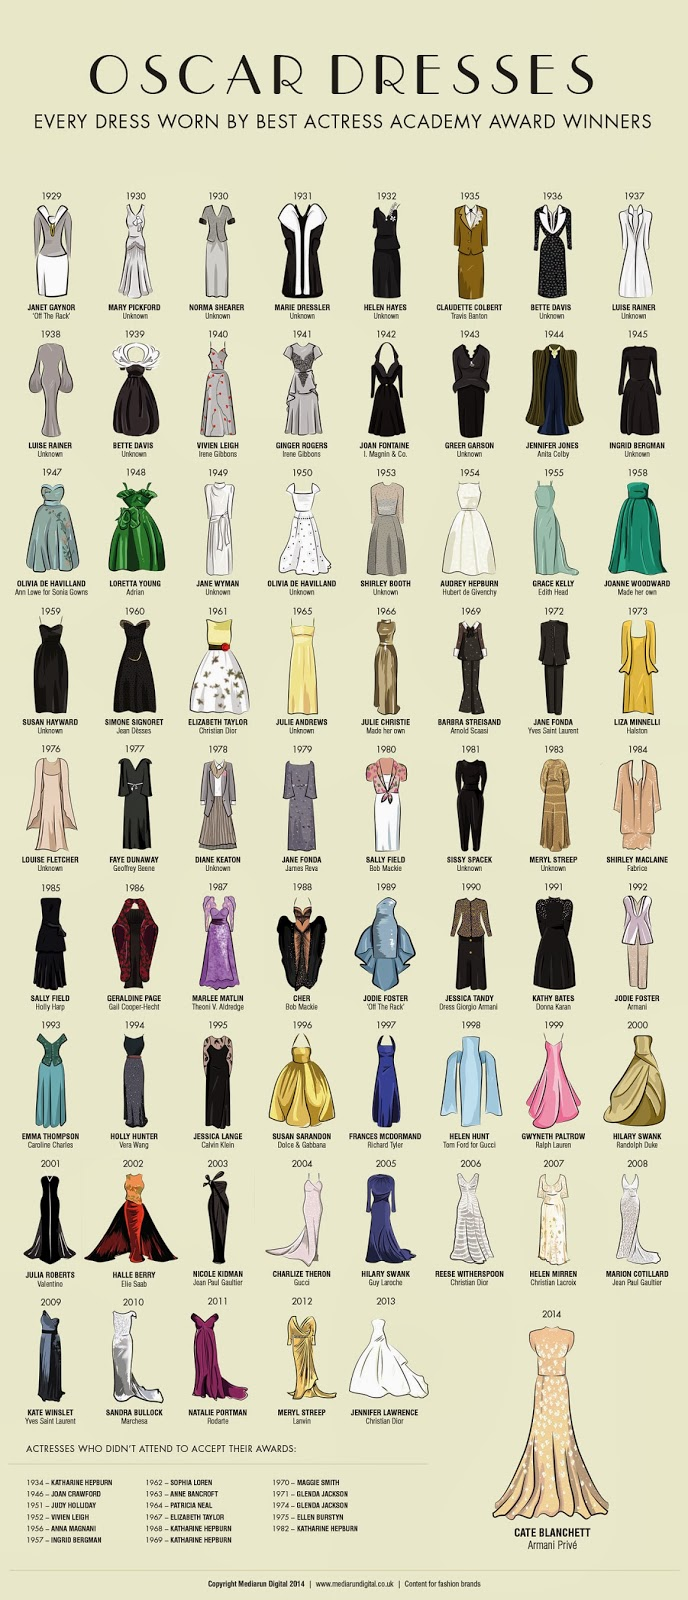 oscars, awards, red carpet, gowns, media run, illustrations, best actress, designer, dresses, fashion, style, celebrities